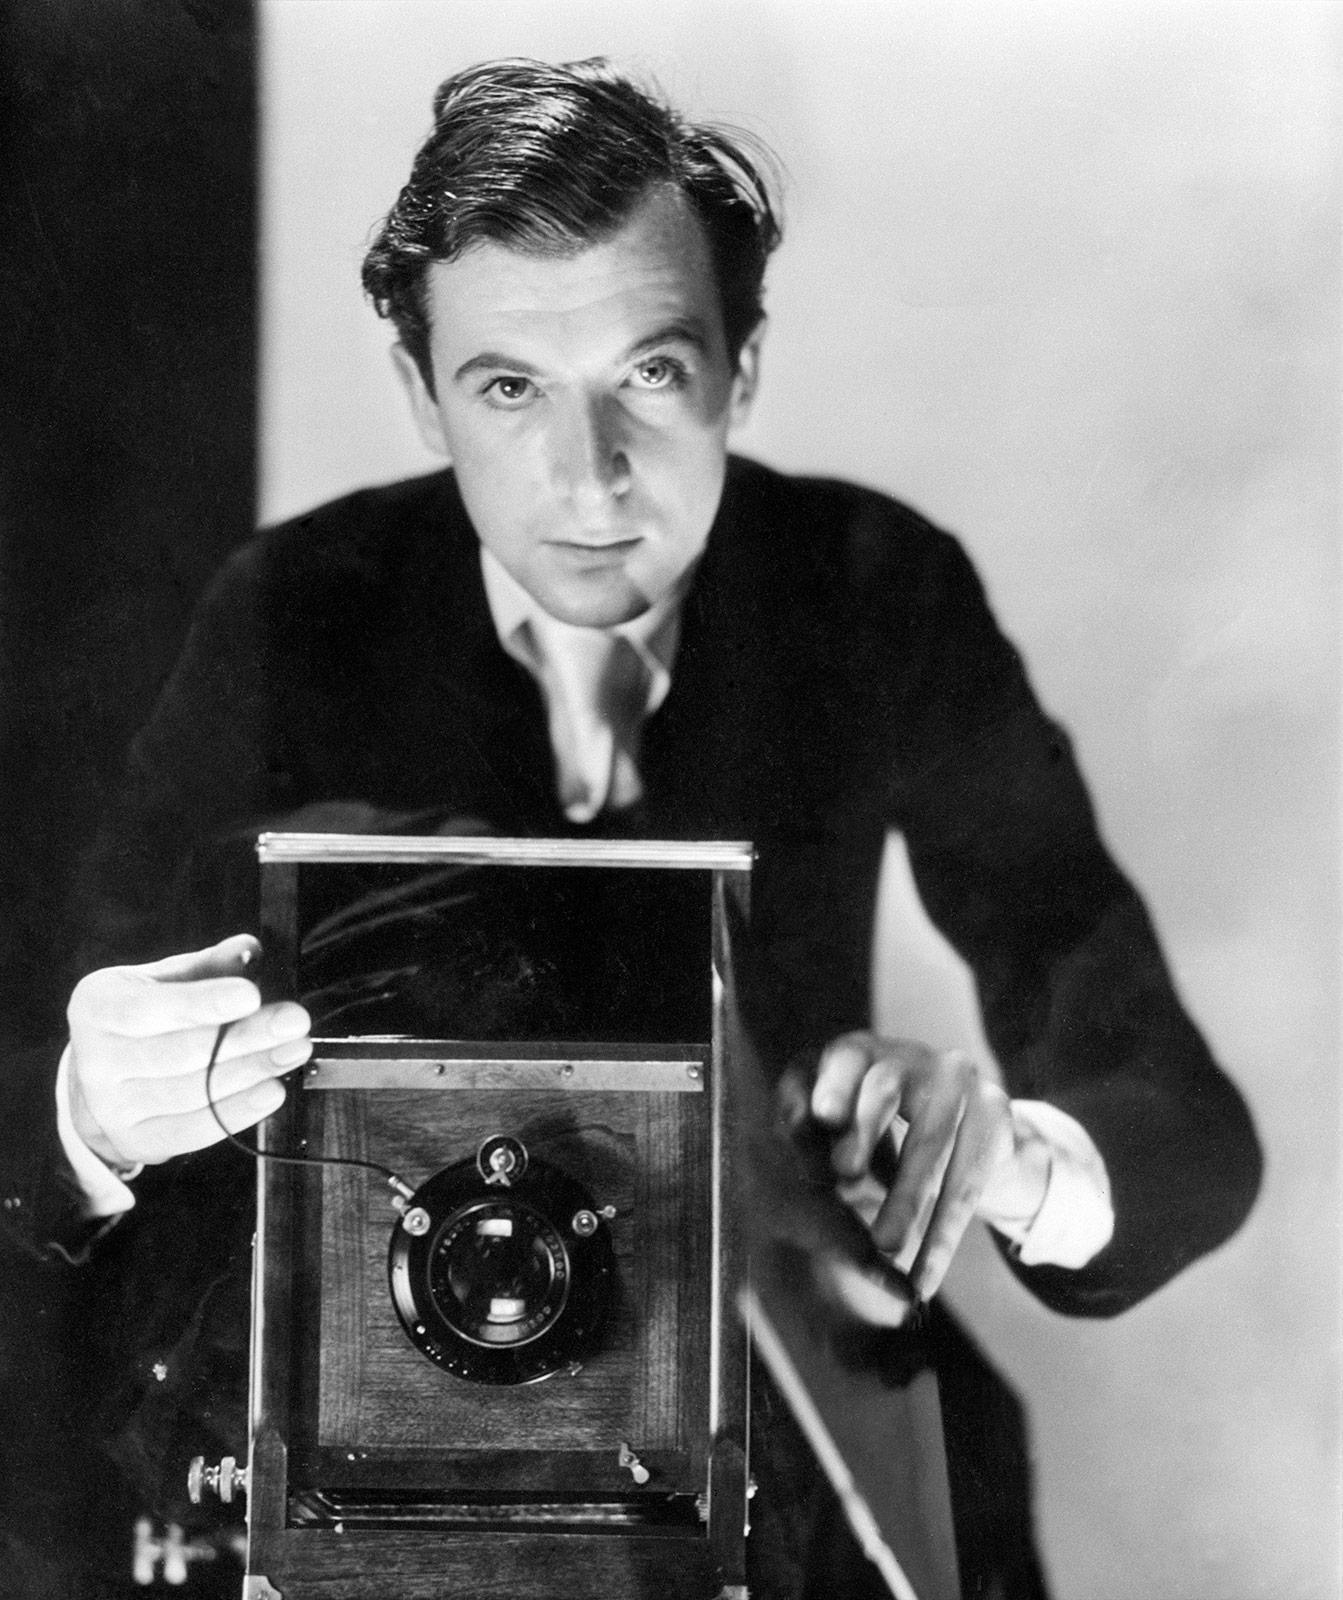 Cecil beaton self portrait 1930s the cecil beaton studio archive at sothebys